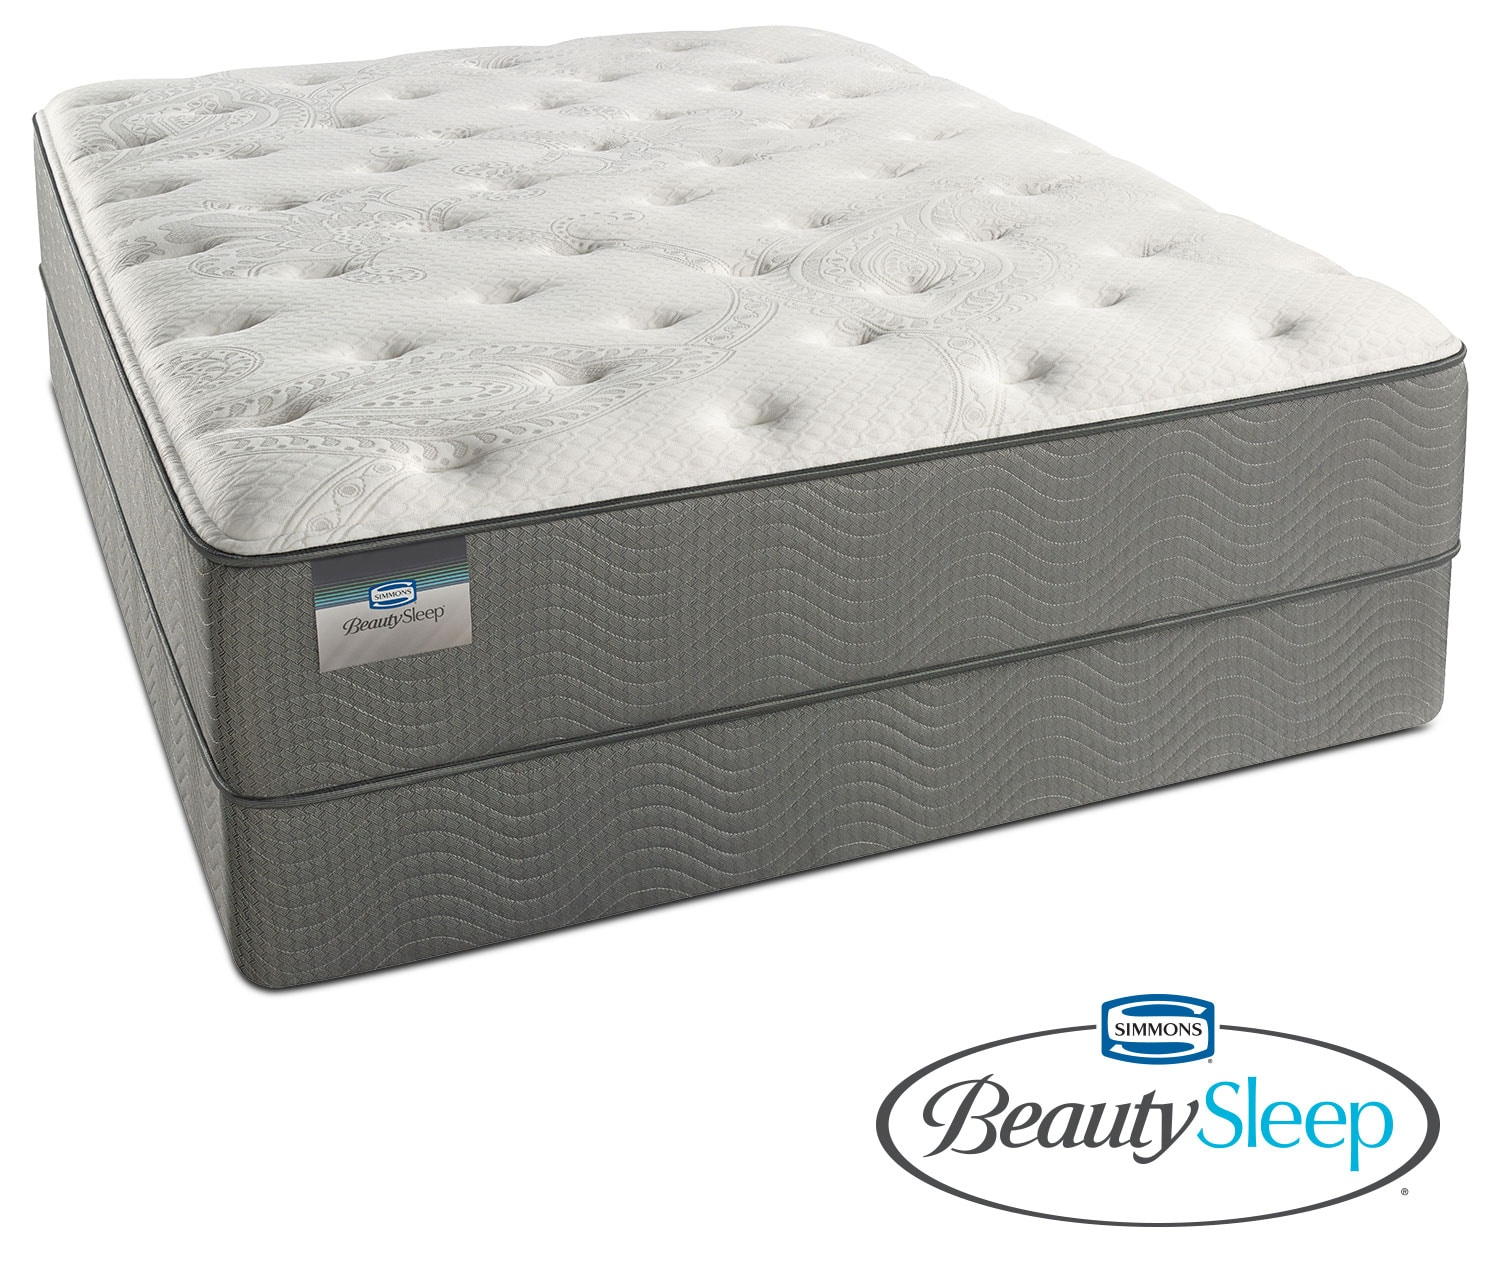 Mattresses and Bedding - Stags Leap Luxury Firm Twin XL Mattress and Foundation Set